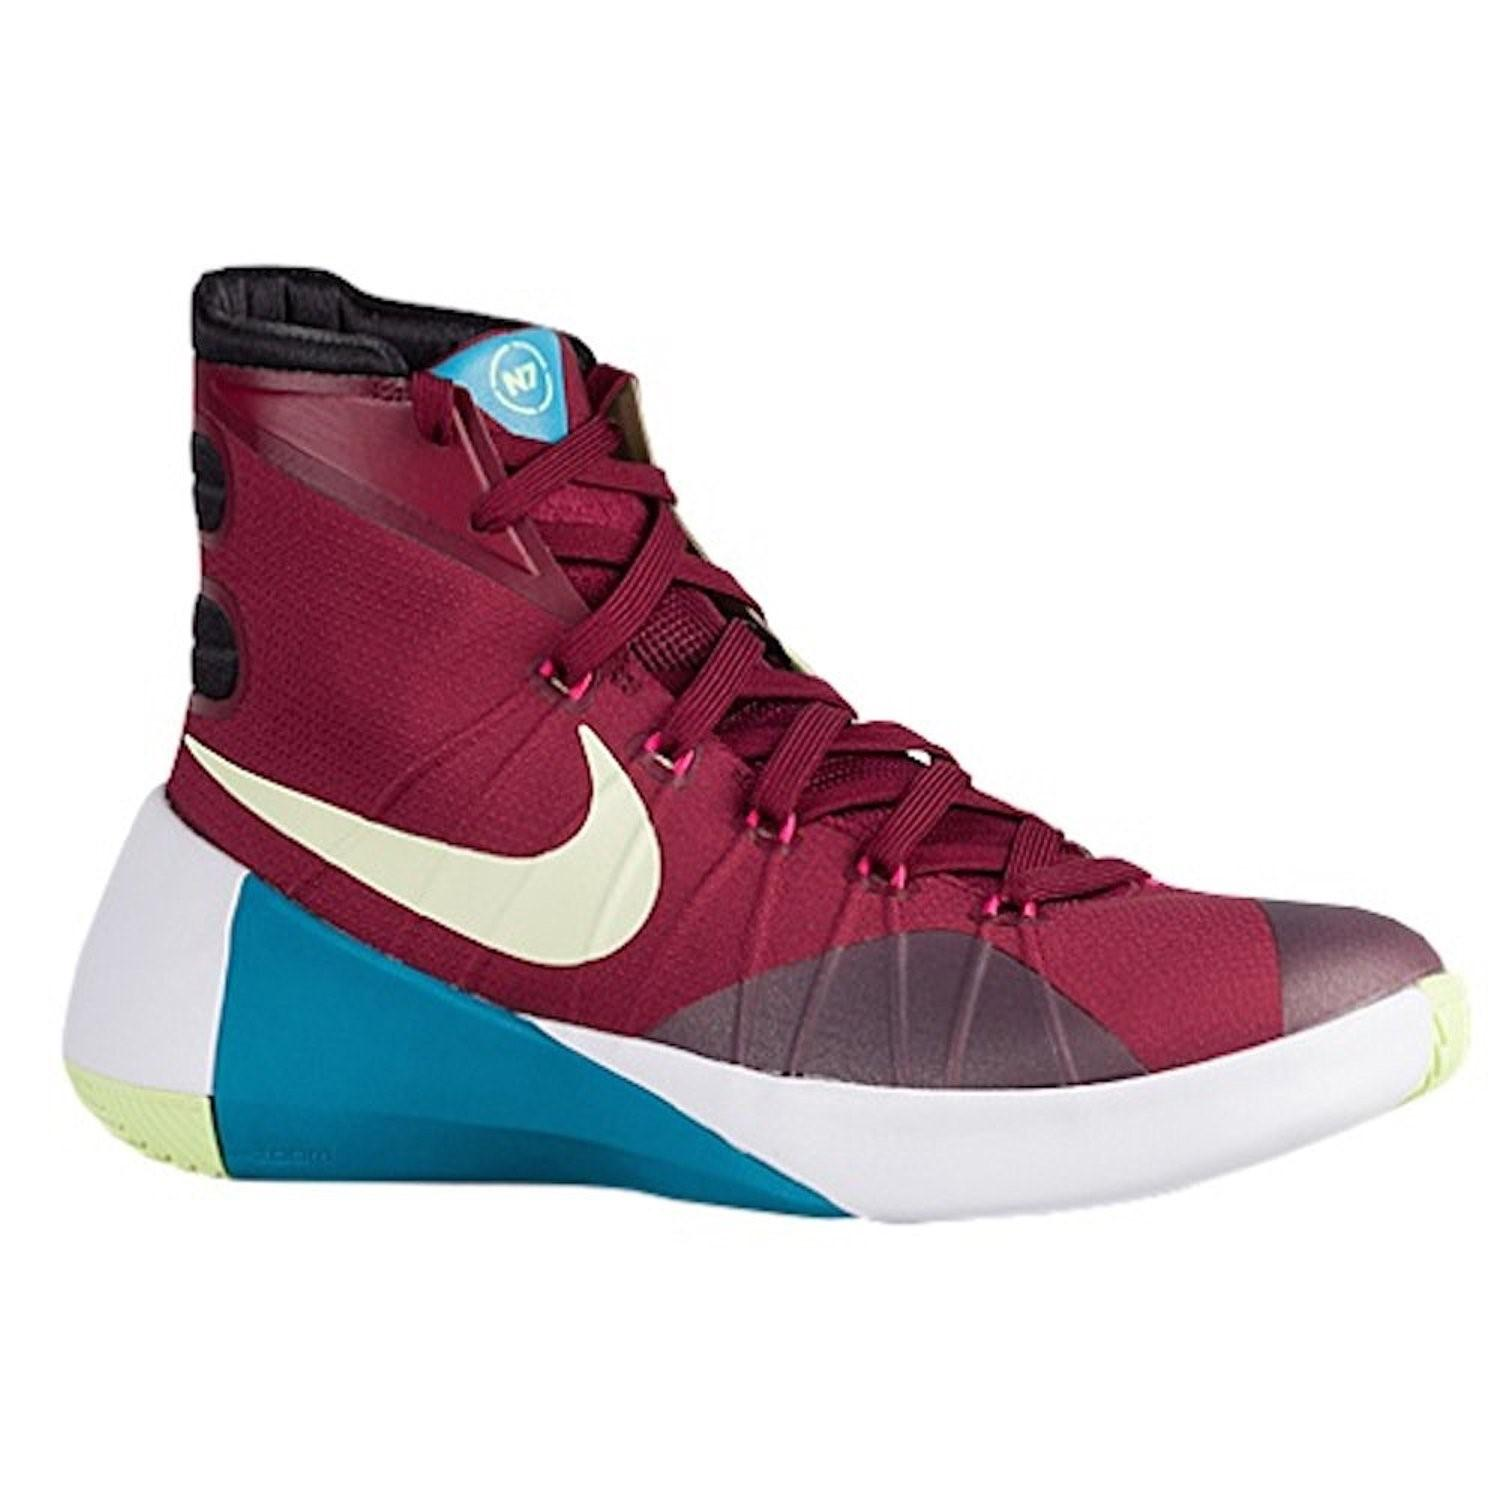 4bb86564ed50 Lyst - Nike Hyperdunk 2015 N7 Basketball Shoes in Red for Men